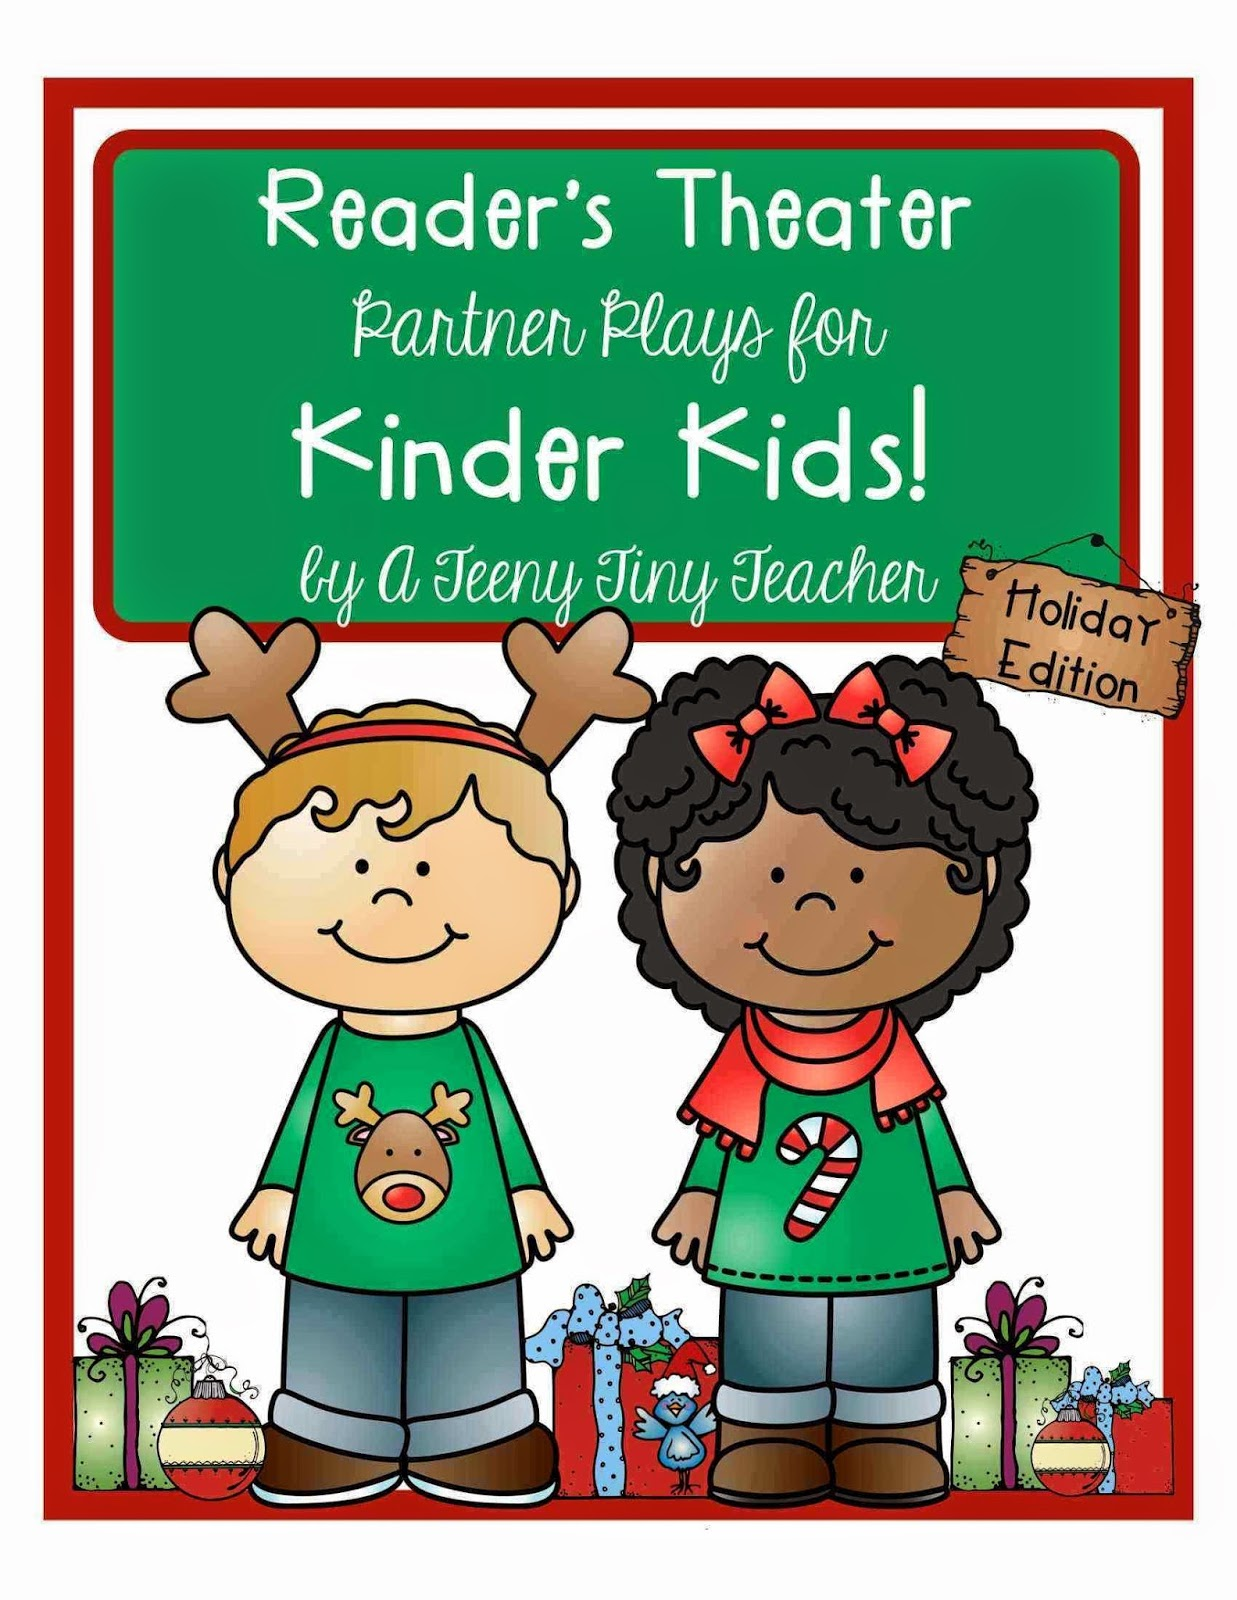 Reader's Theater – Holiday Edition